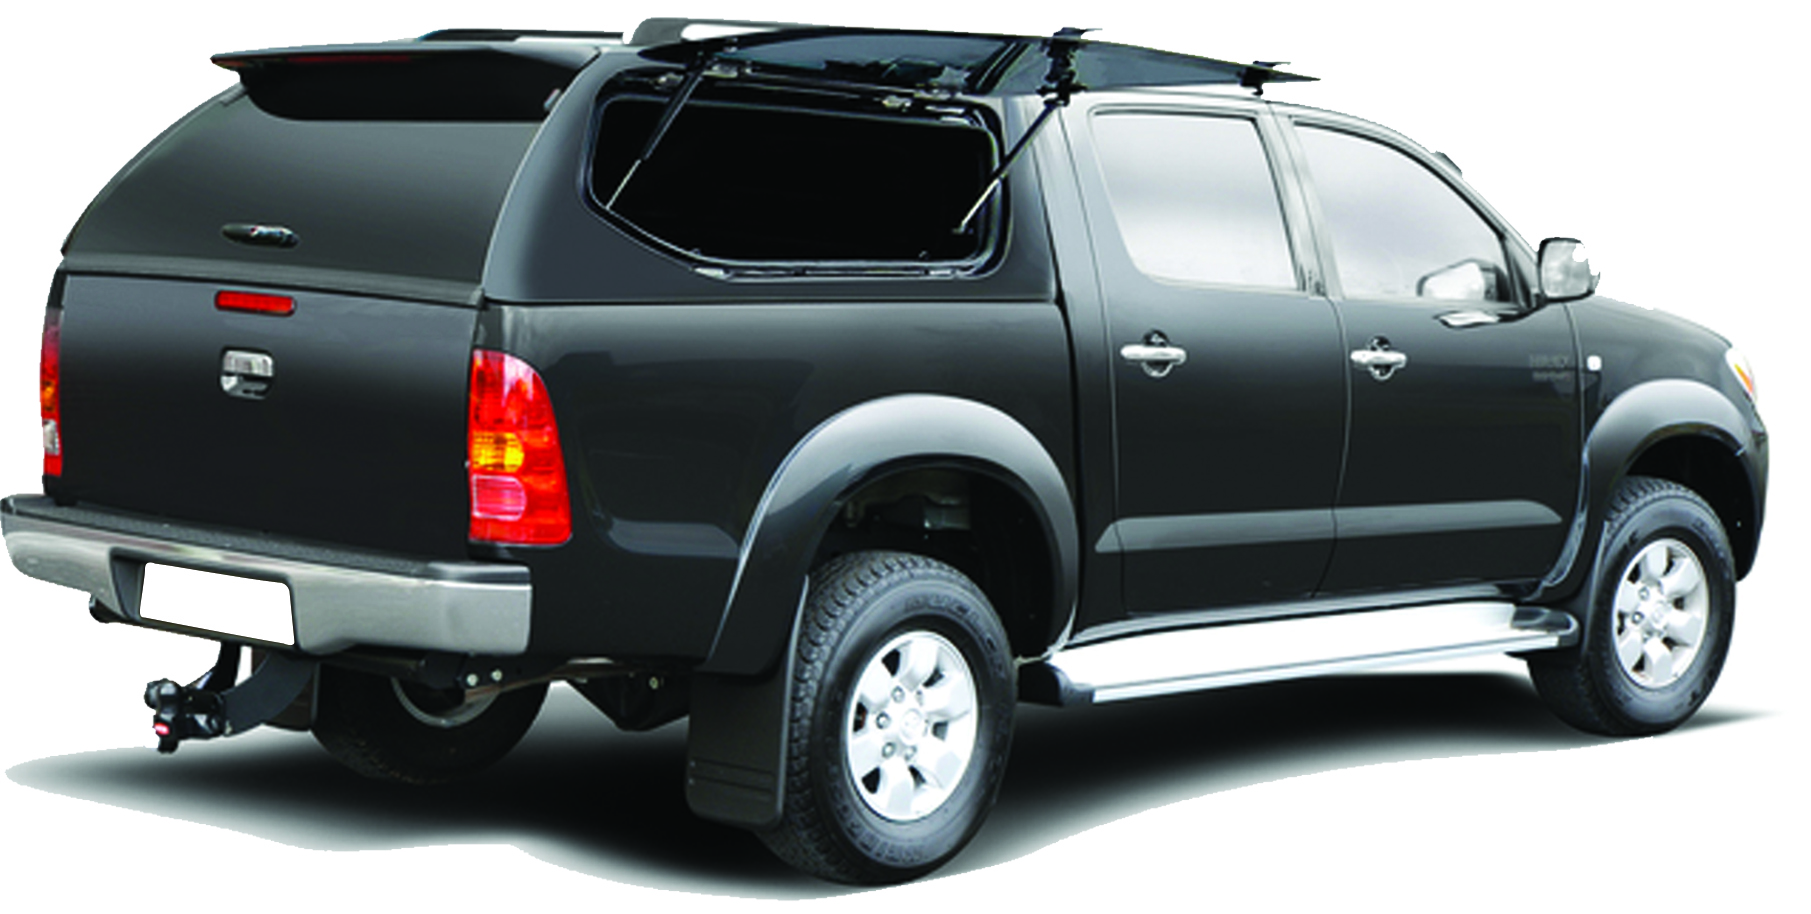 sv213 hard top sline sv nissan d40 2005 2015 king cab vitres papillon gris klo nissan navara. Black Bedroom Furniture Sets. Home Design Ideas